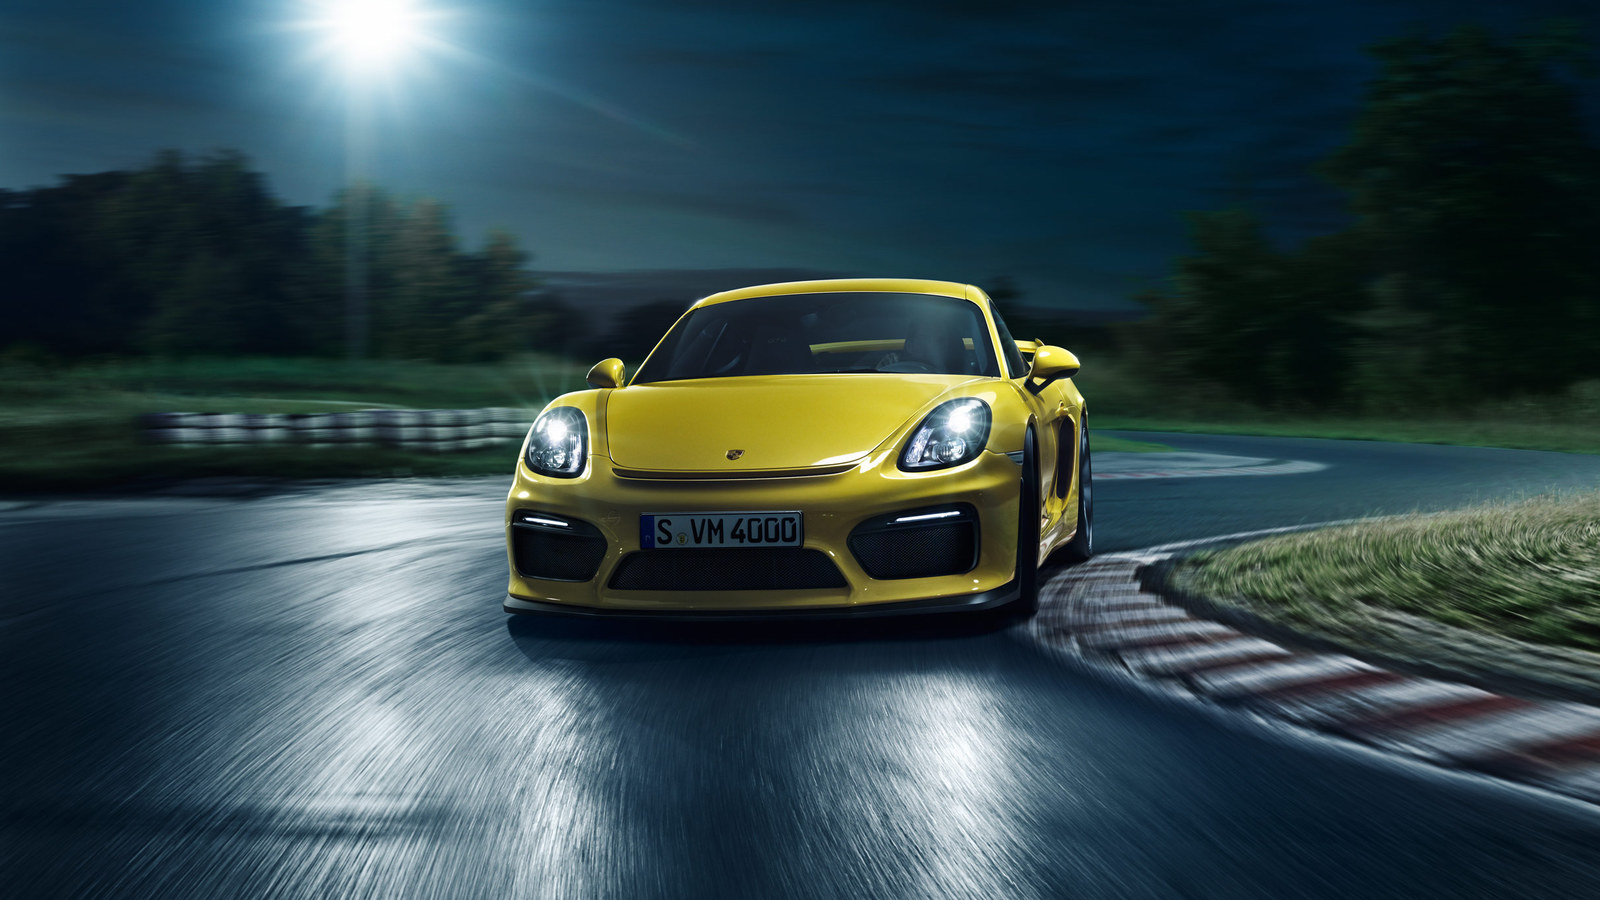 1600x900 - Porsche Cayman Wallpapers 23